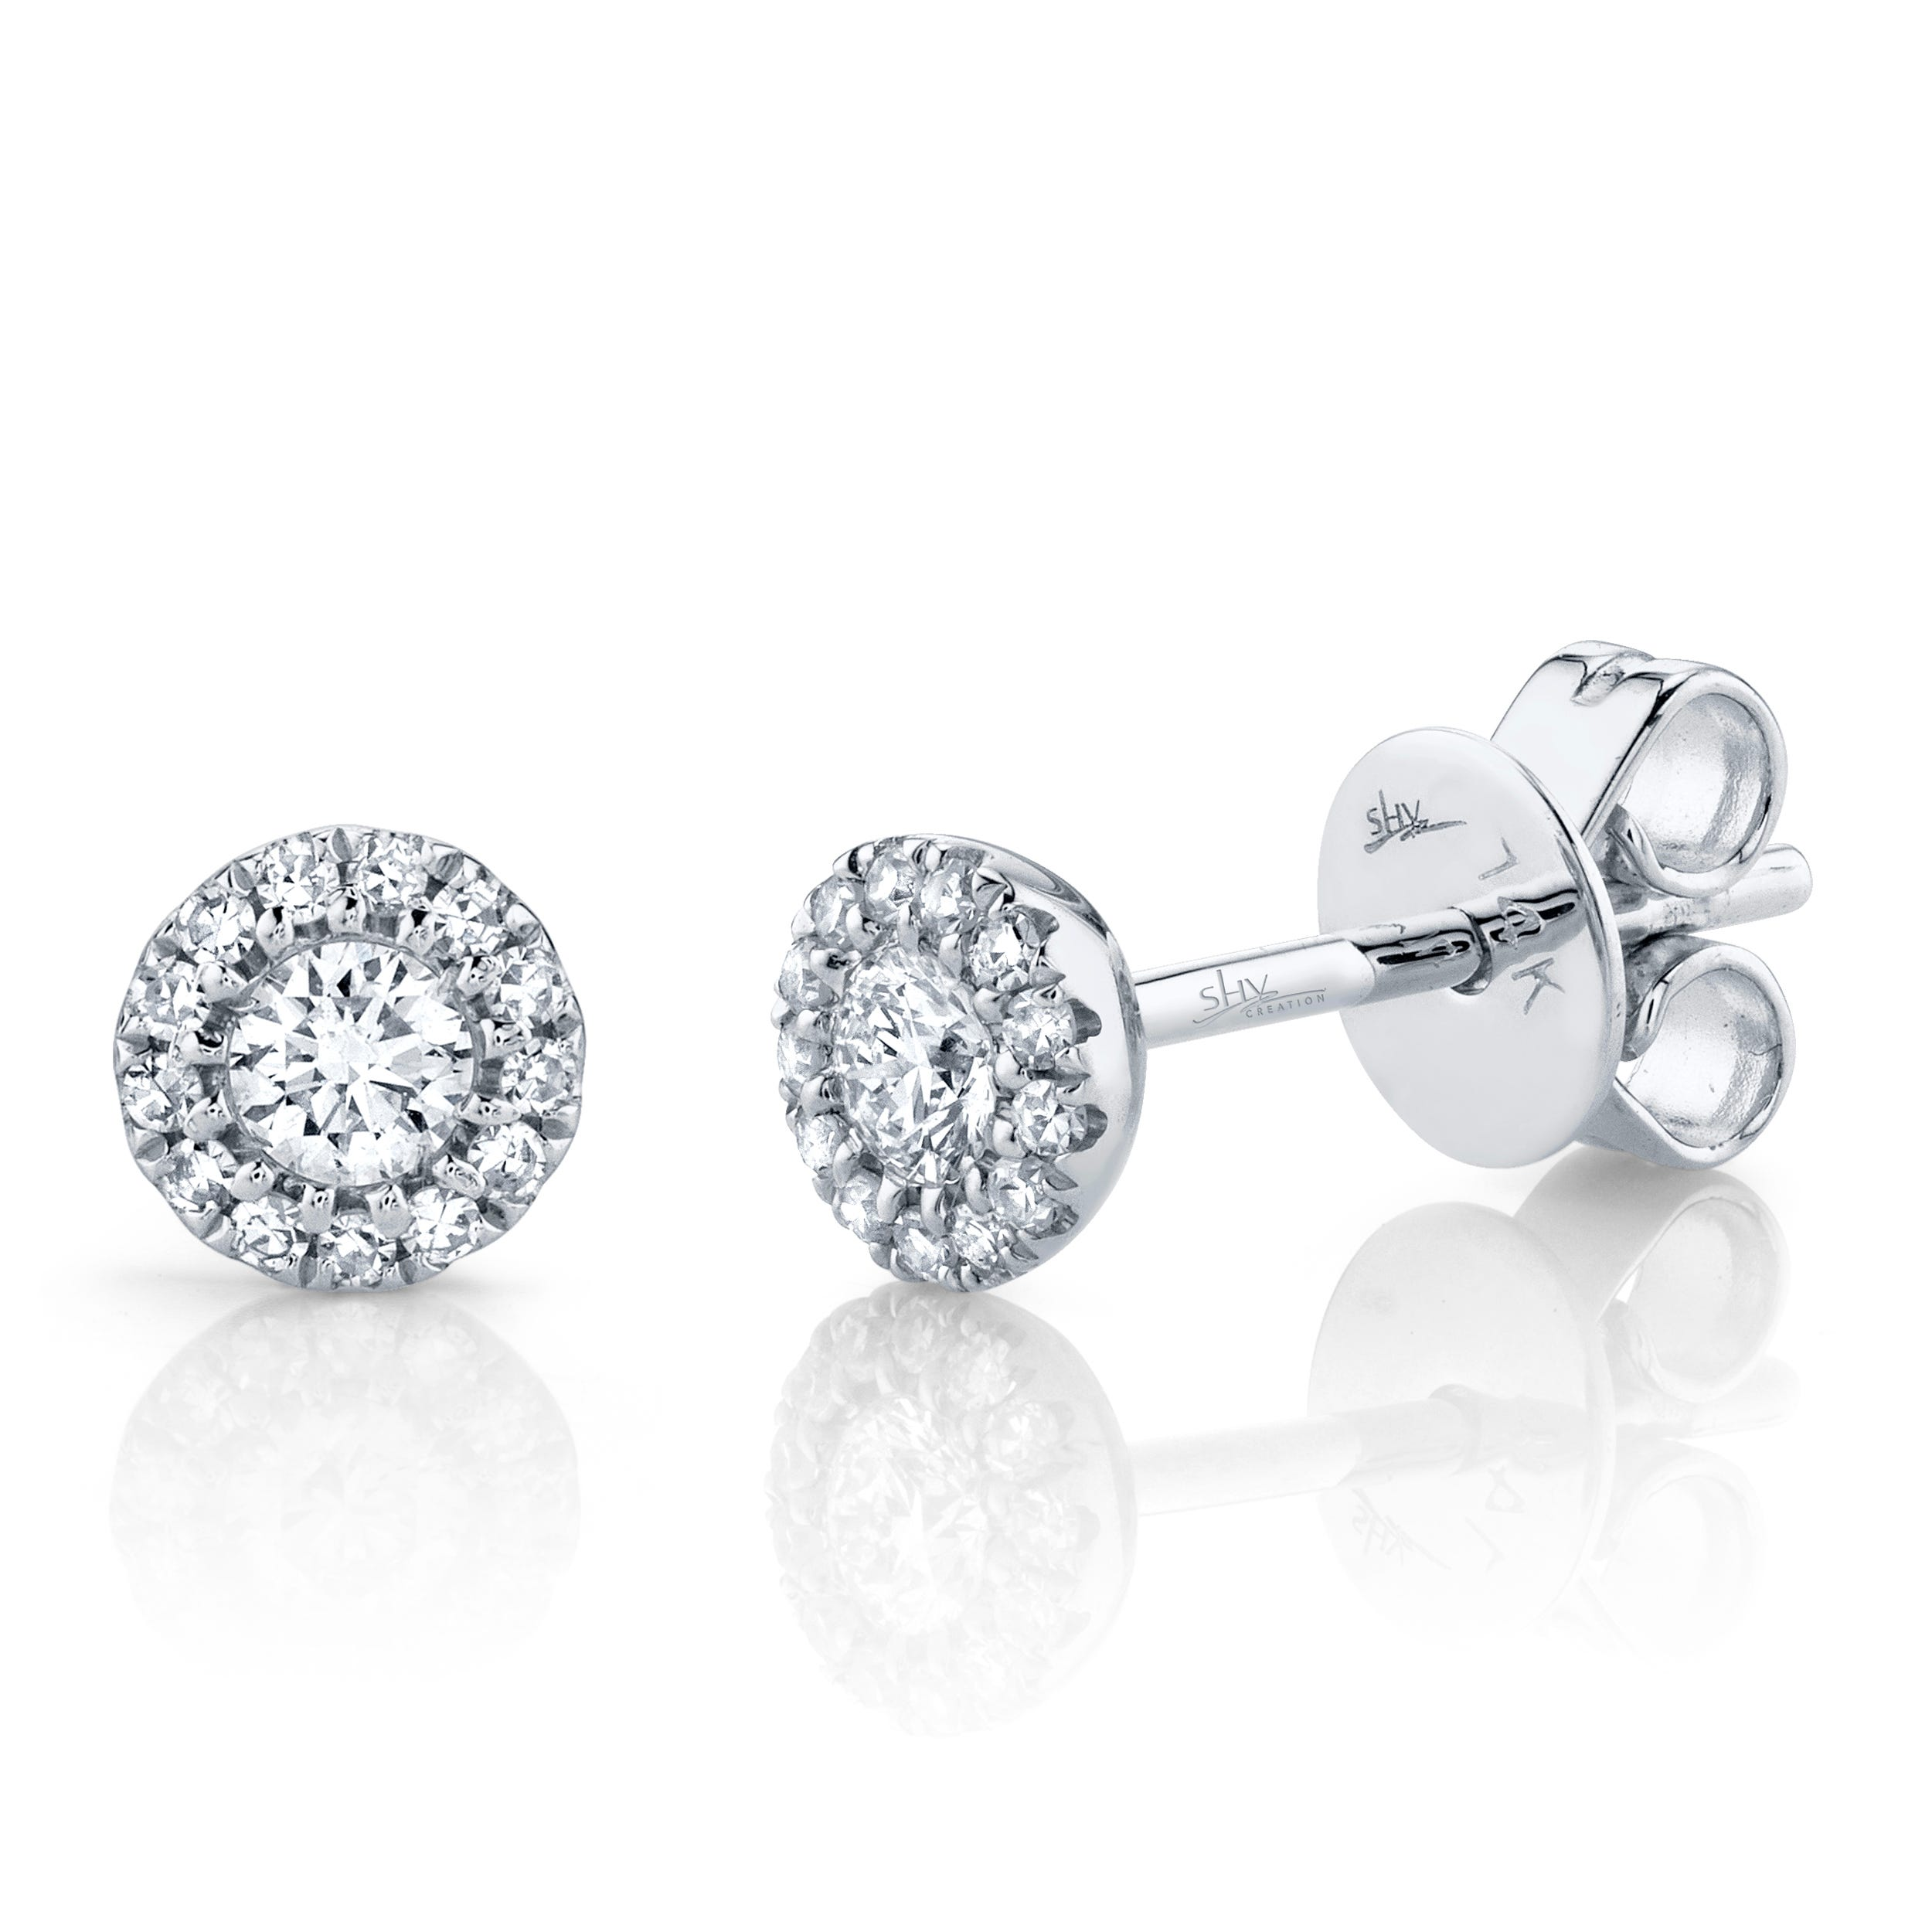 Shy Creation: Diamond Halo 1/4ctw. Stud Earrings in 14k White Gold